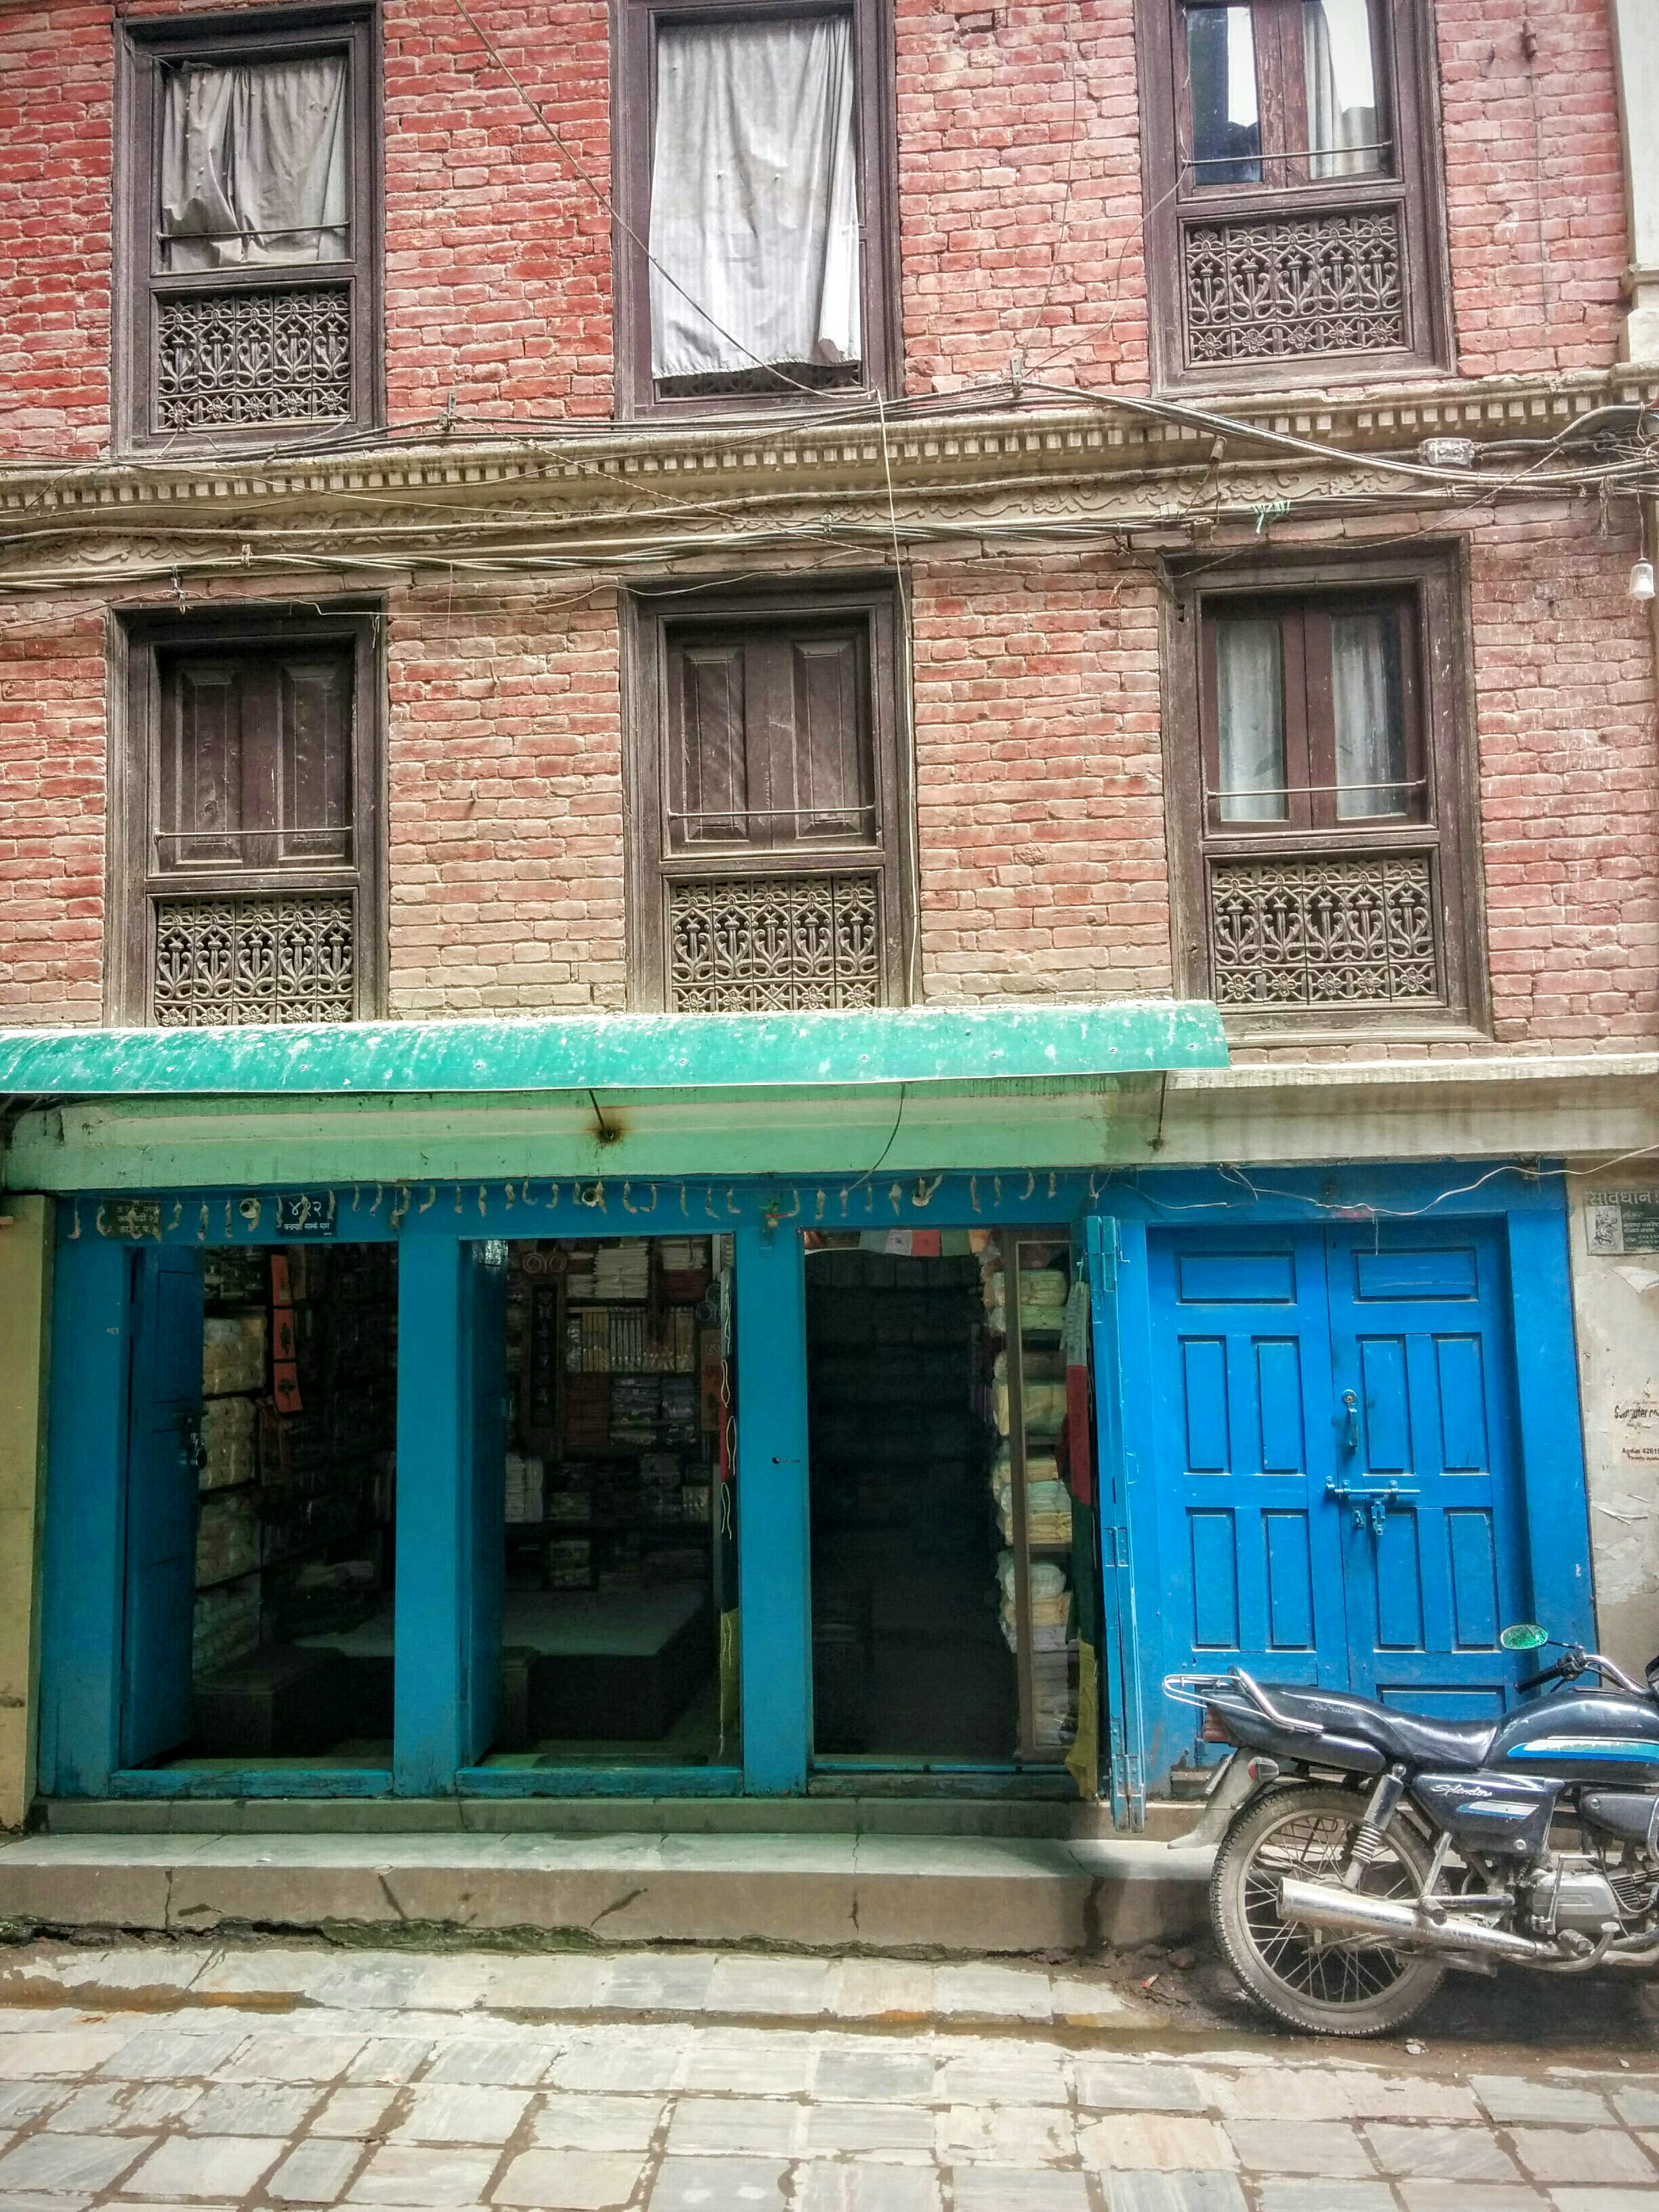 The front of a simple shop in an older building